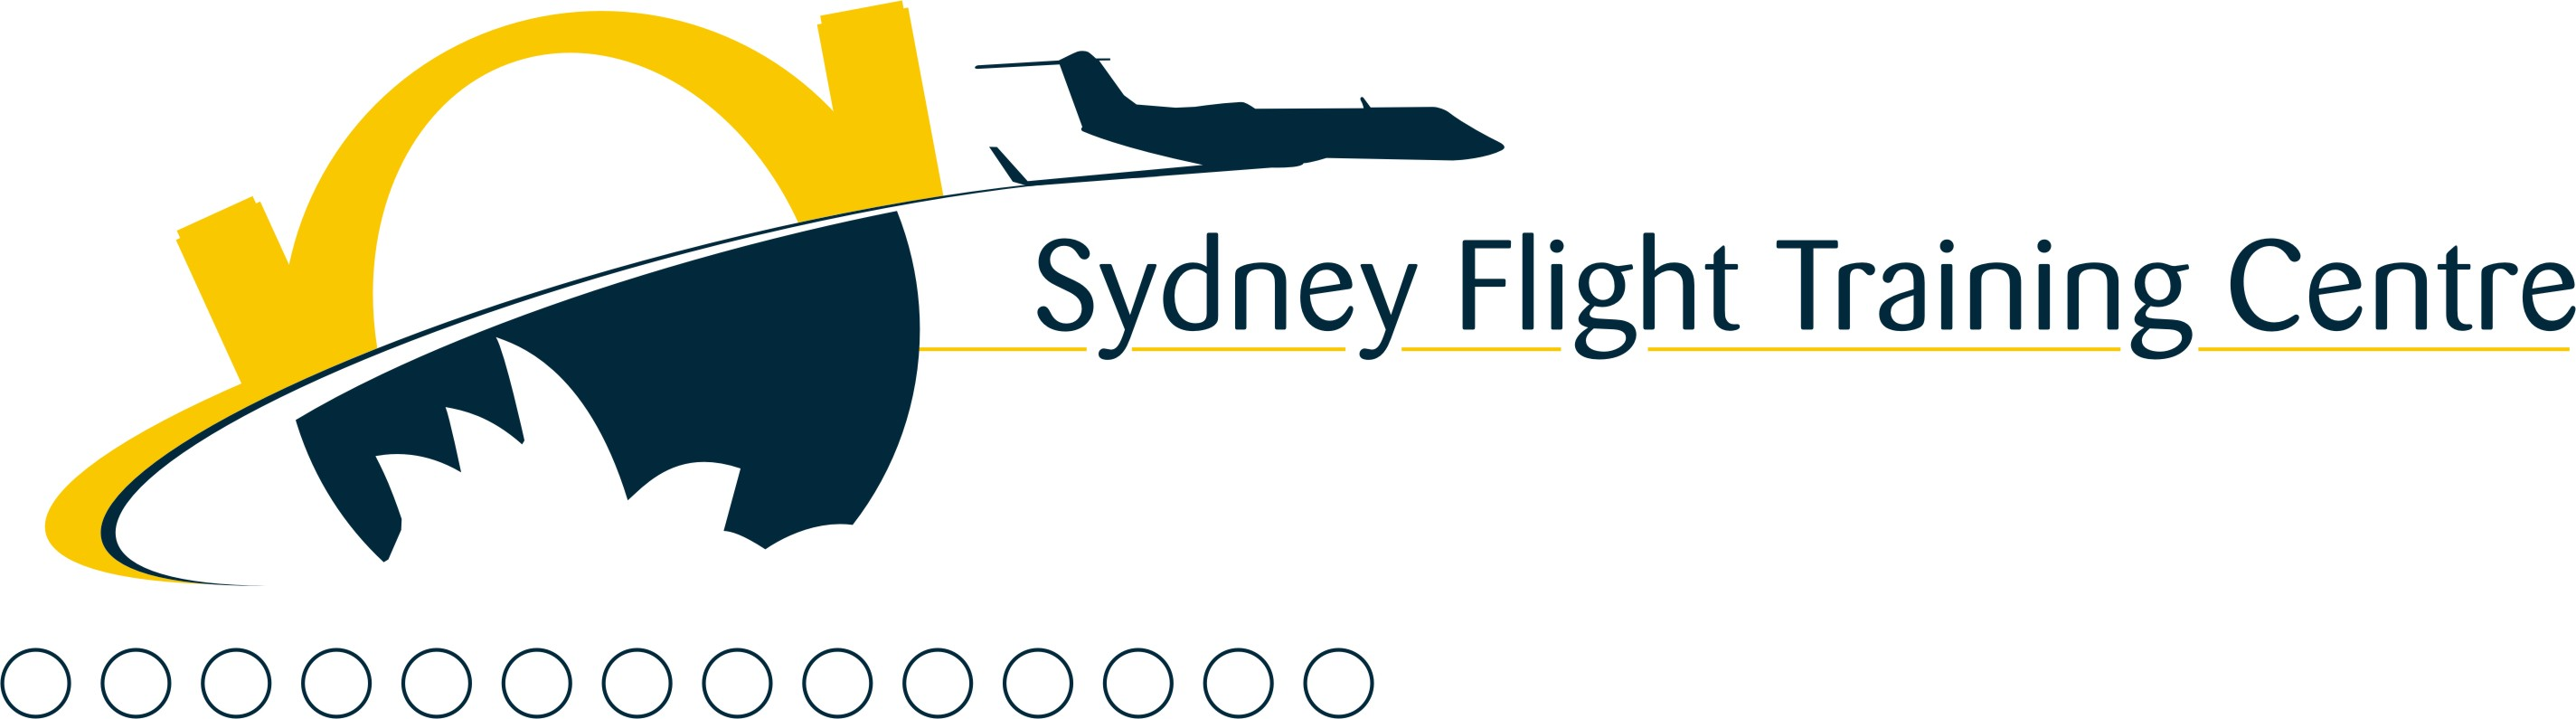 Sydney Flight Training Centre logo